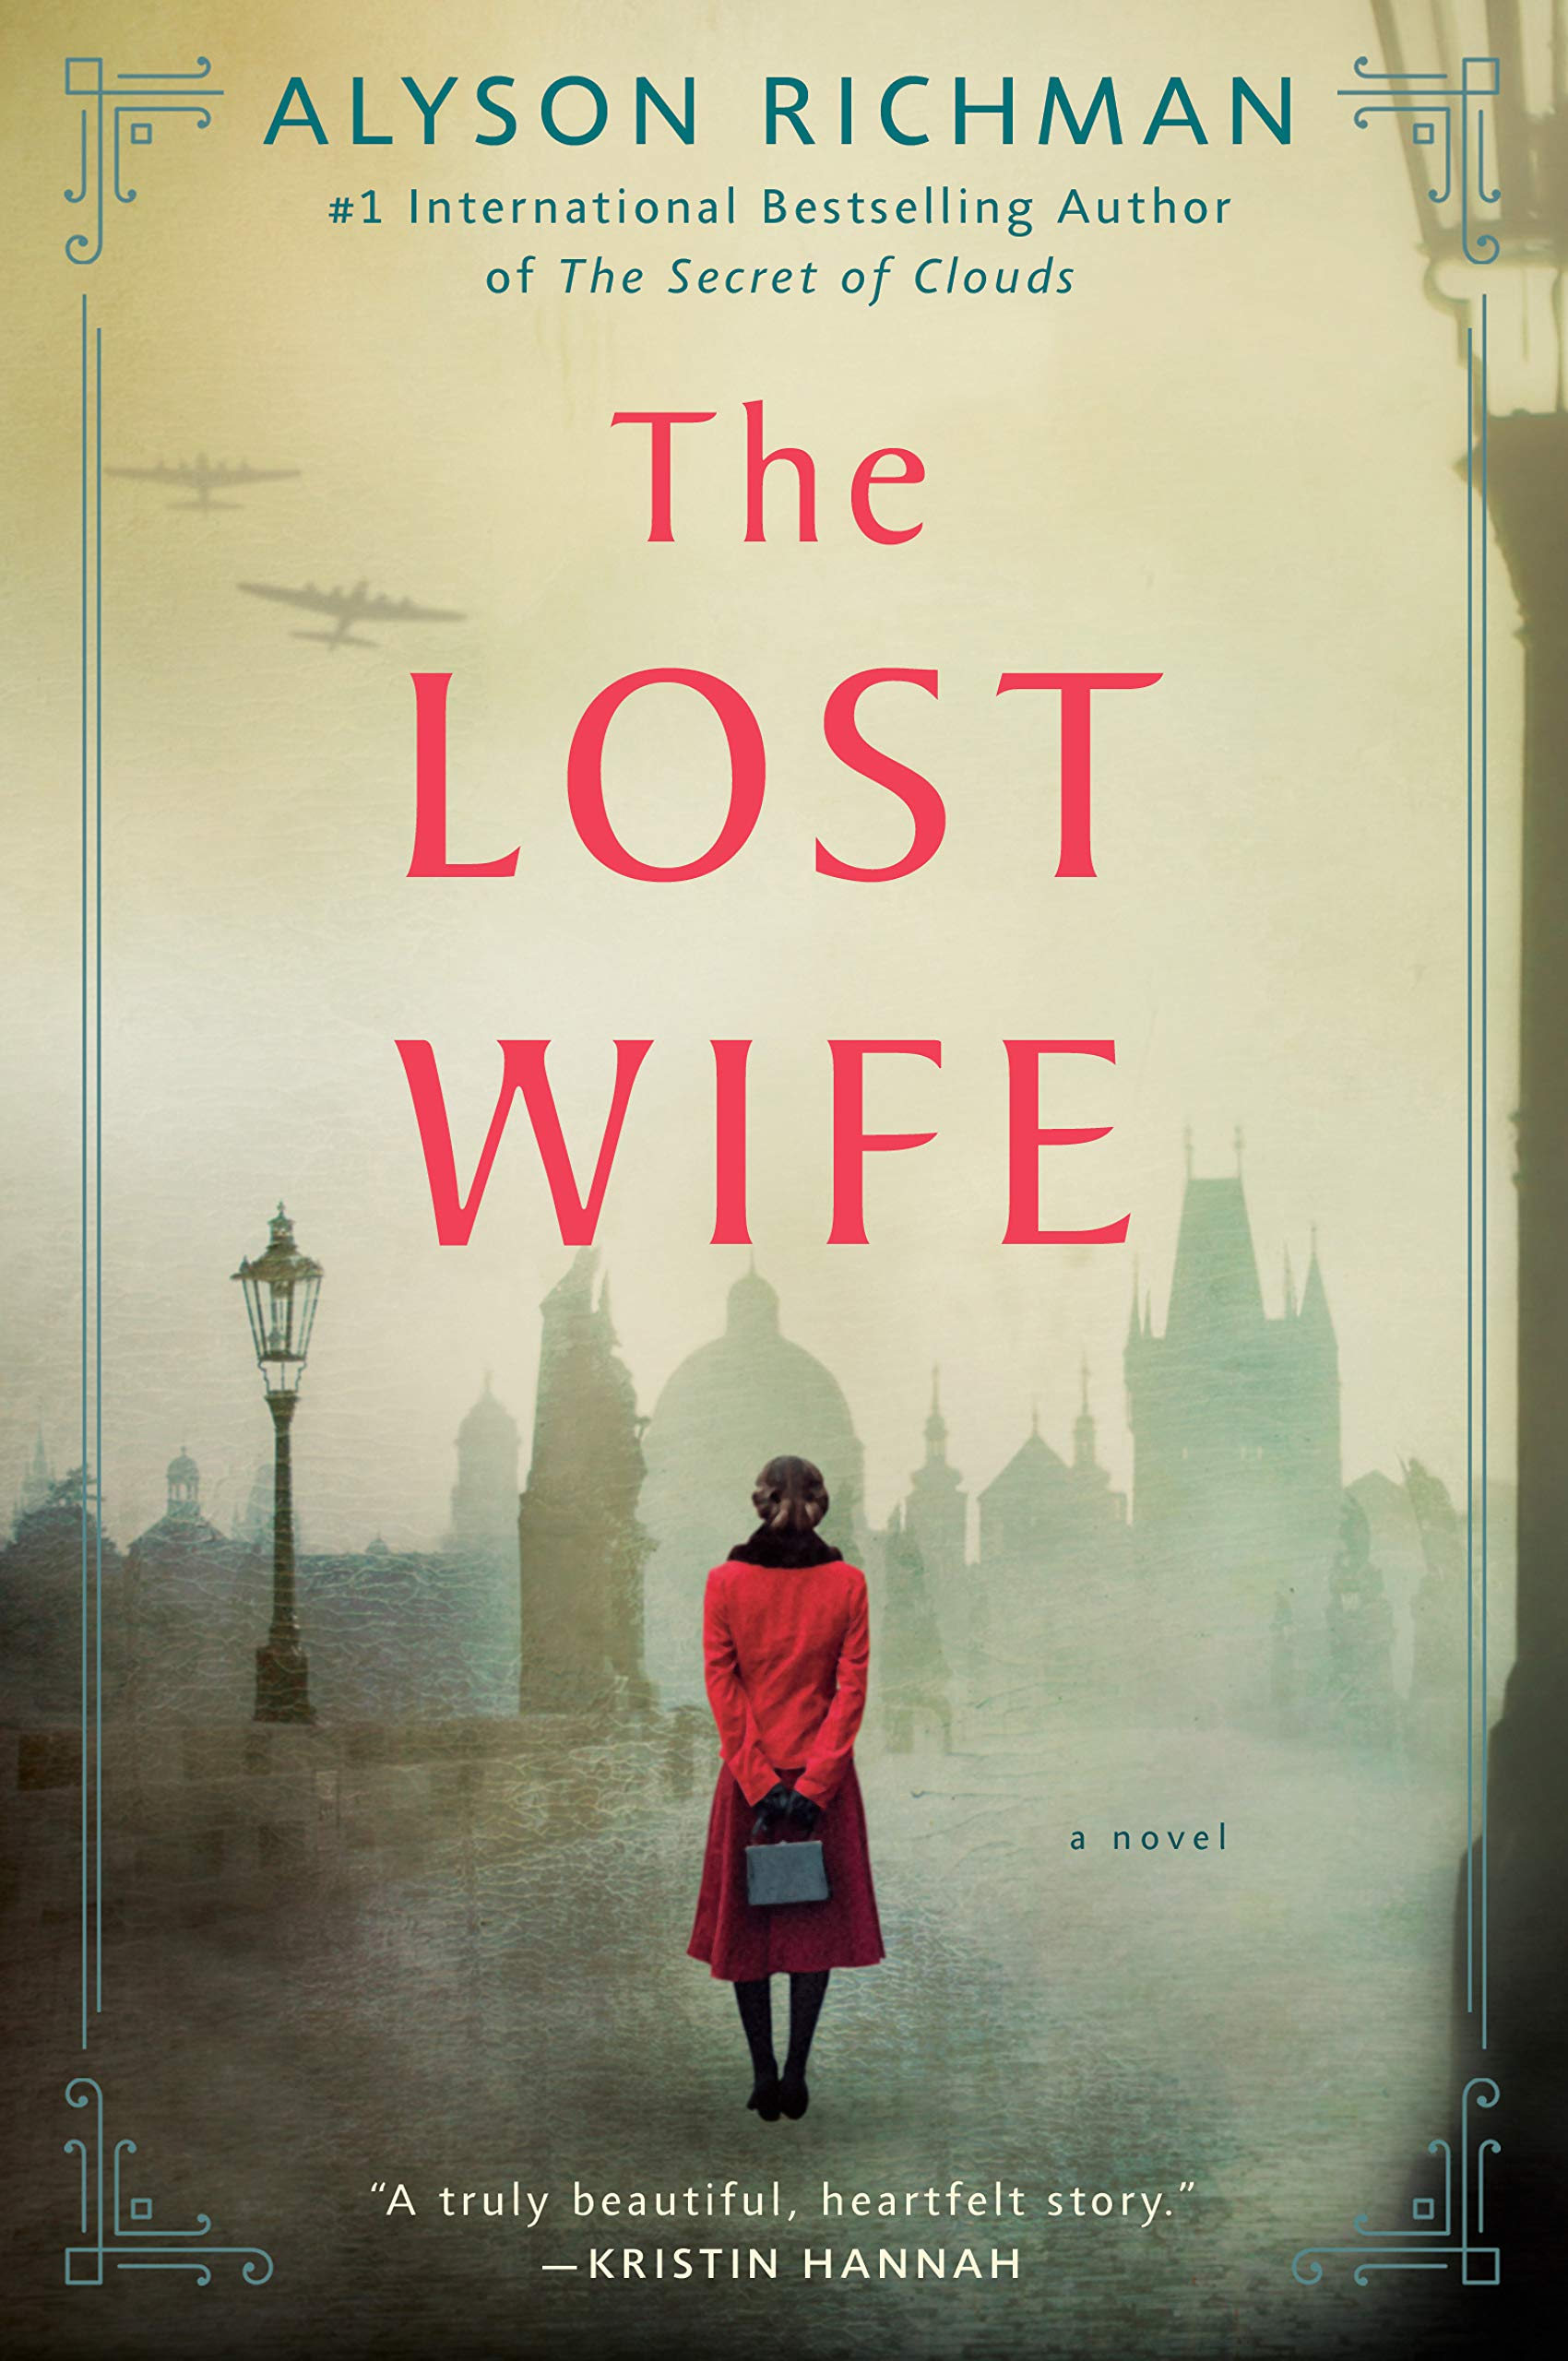 The Lost Wife by Alyson Richman